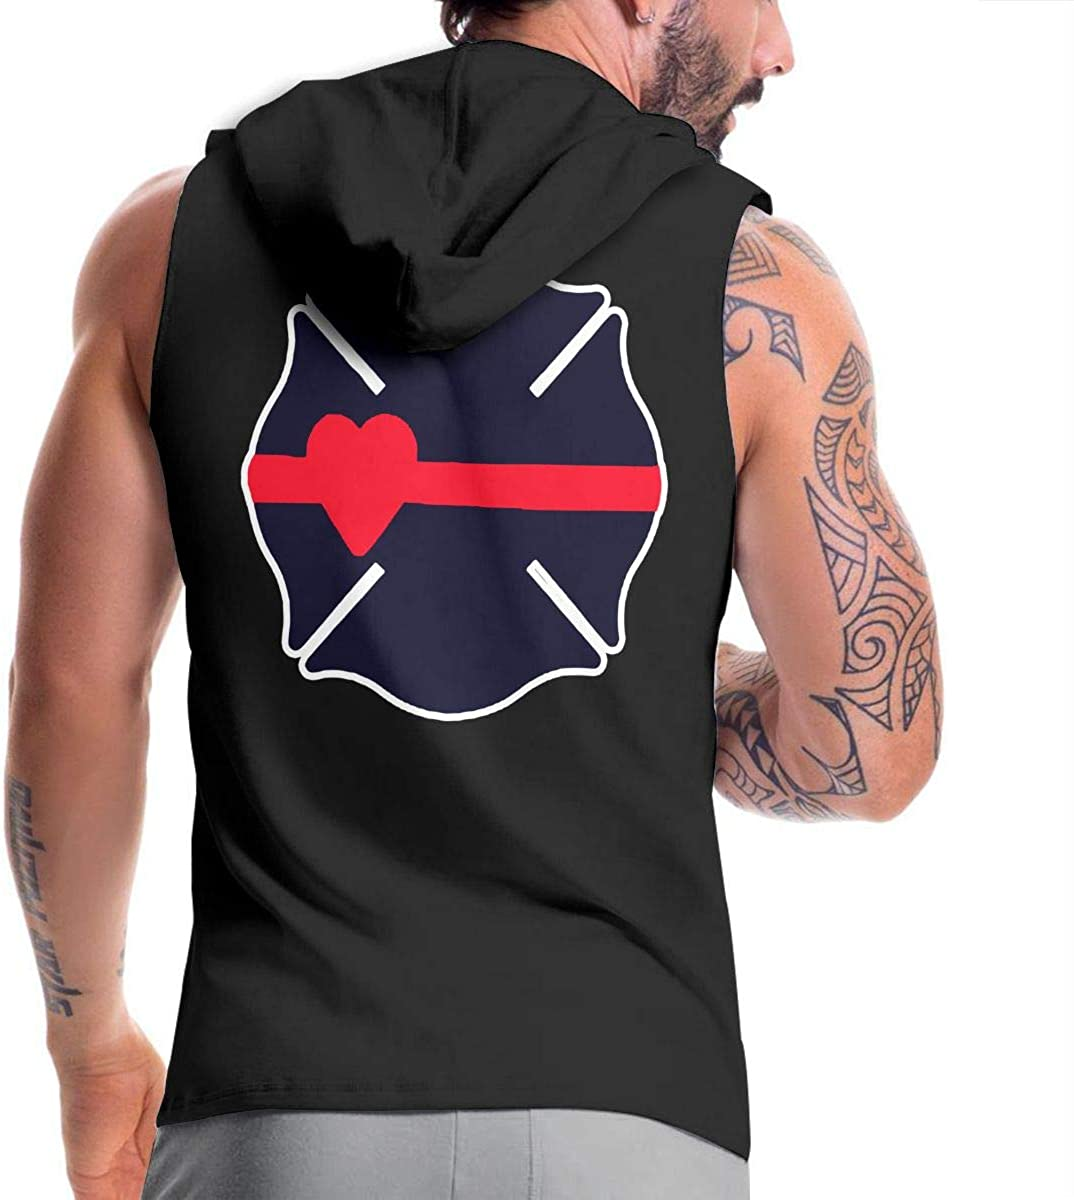 Allover Print Mens Hoodie Sweater 0026 Electric Guitar Rock Star M Yizzam